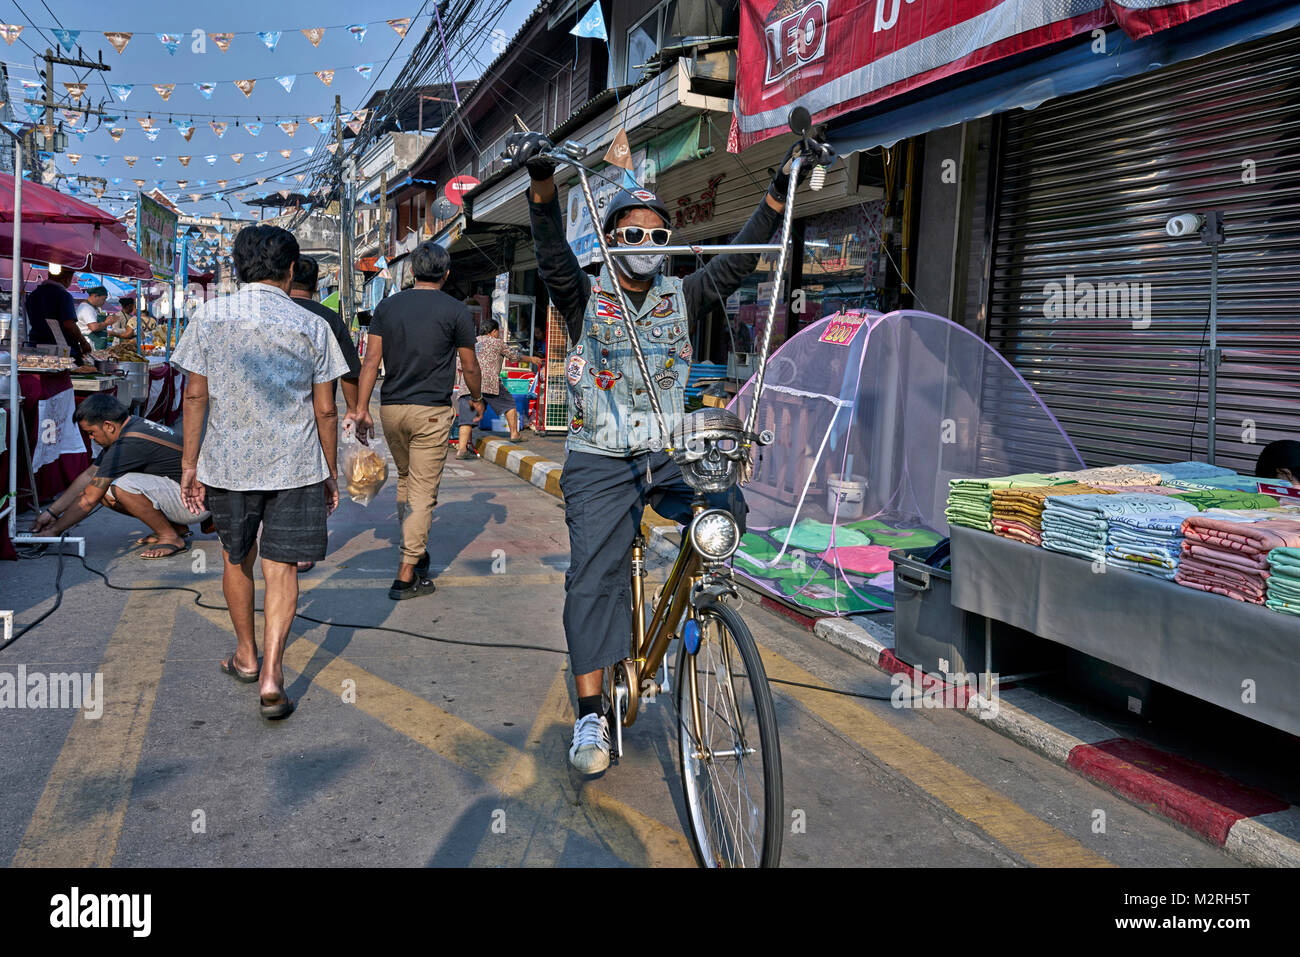 Young man riding a highly modified bicycle resembling a chopper motorcycle with raised handlebars. Thailand Southeast - Stock Image